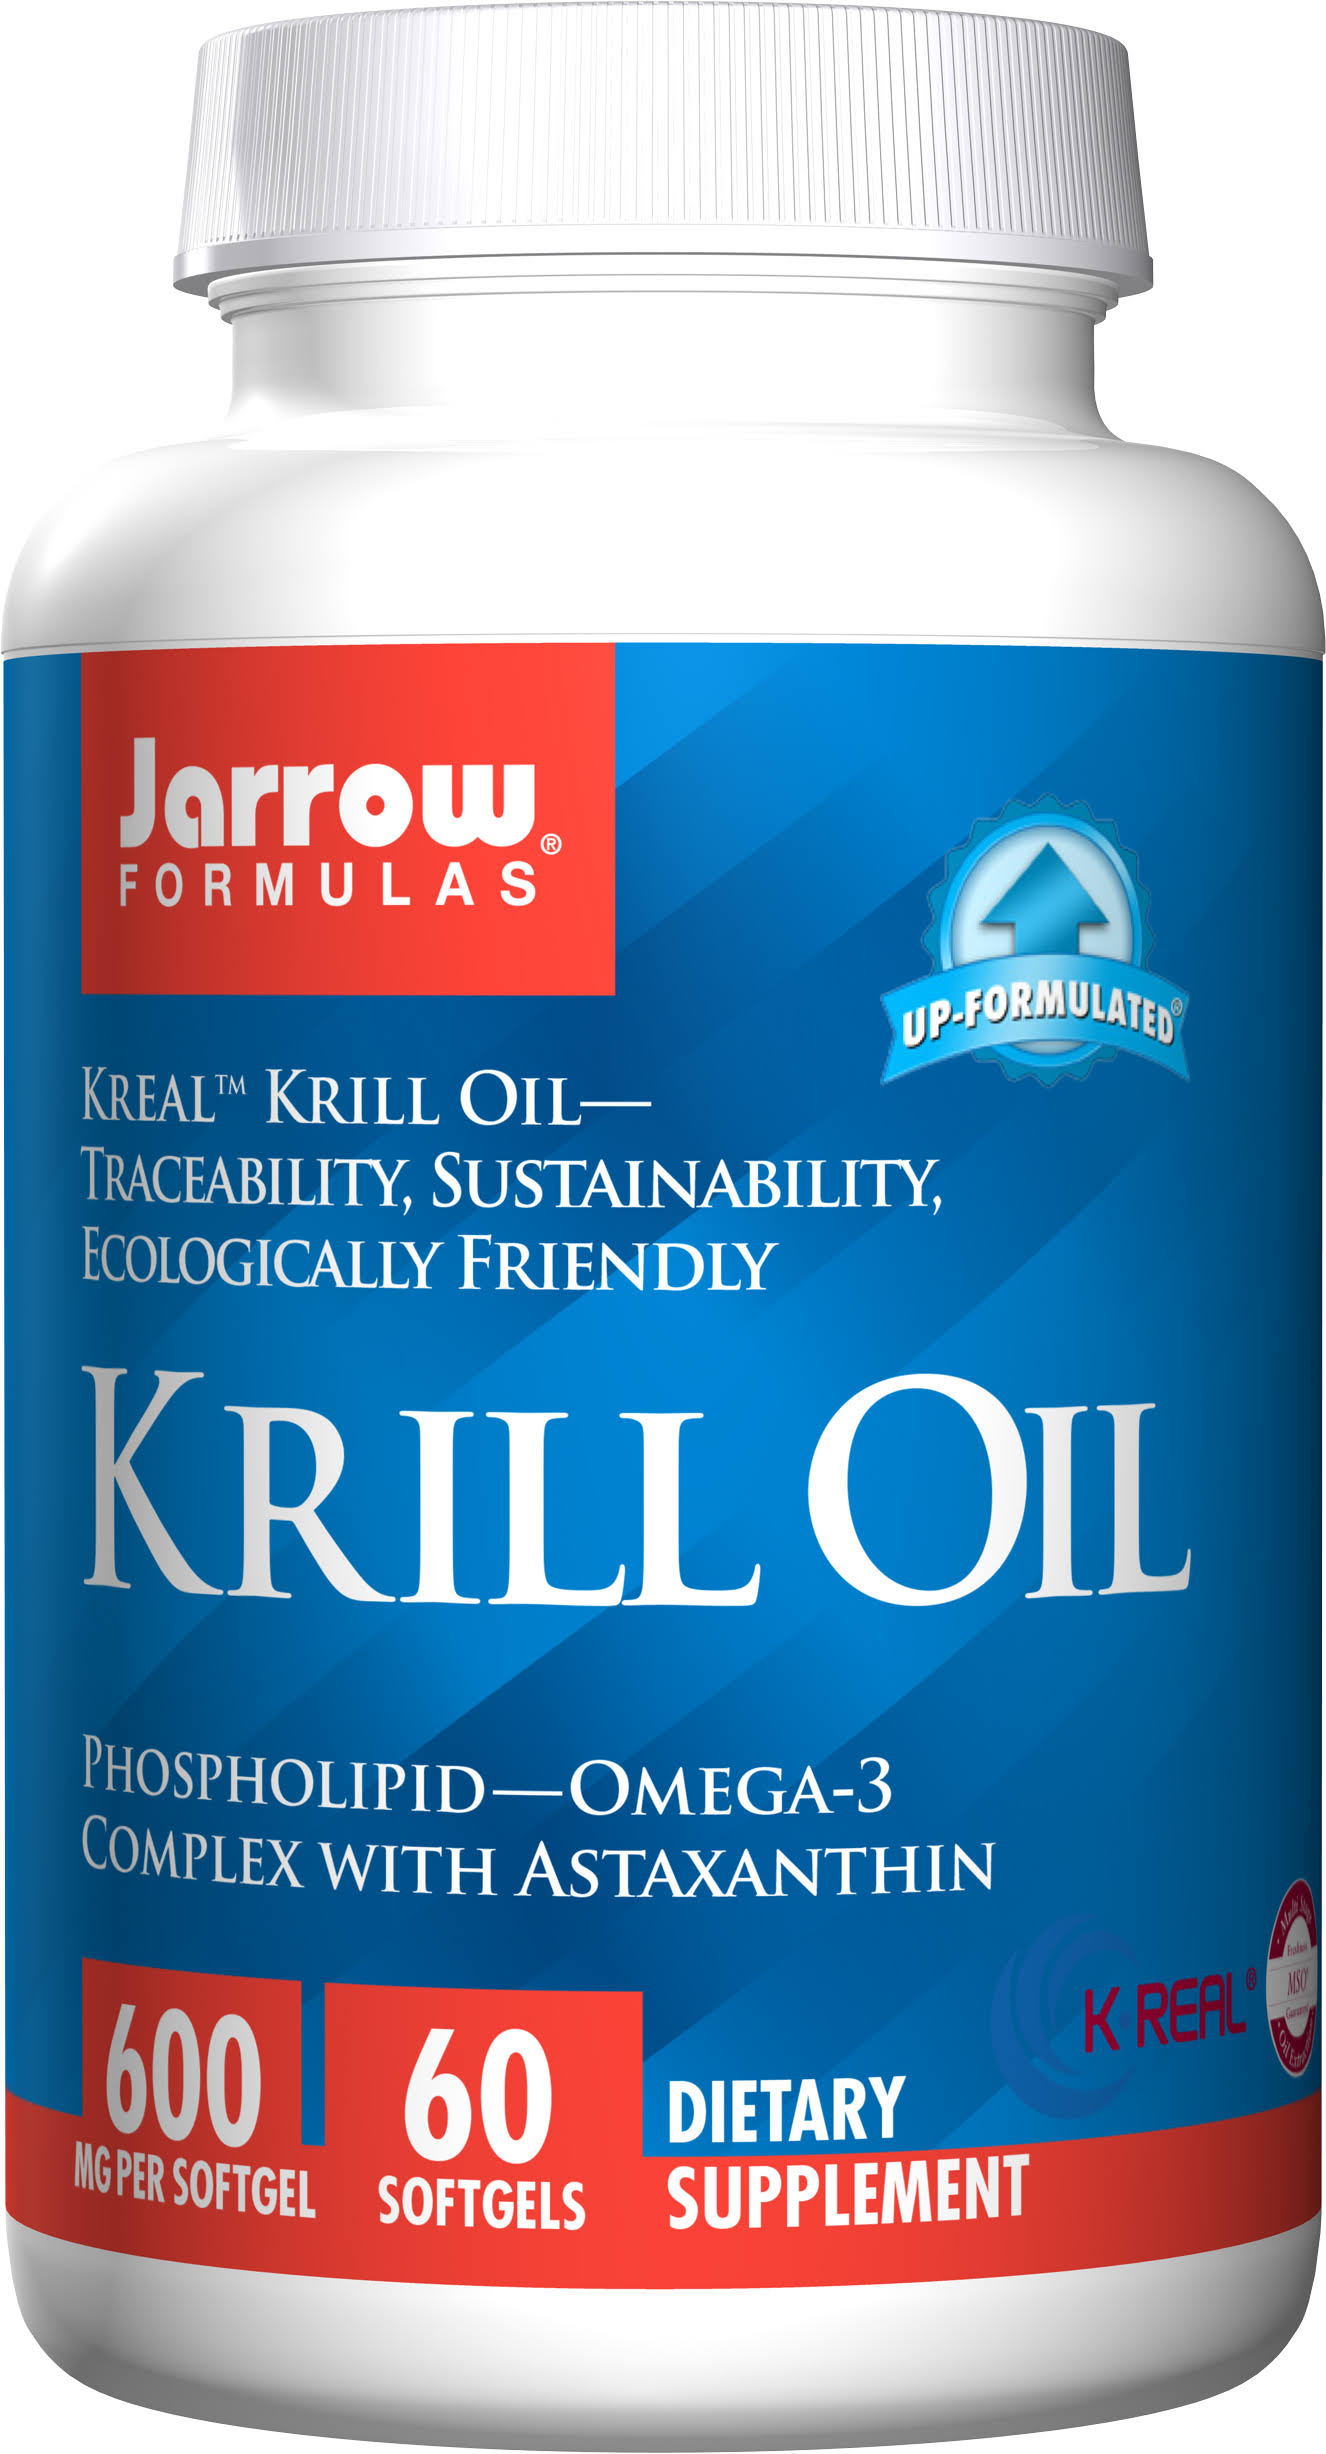 Jarrow Formulas Krill Oil Supplement - 60 Softgels